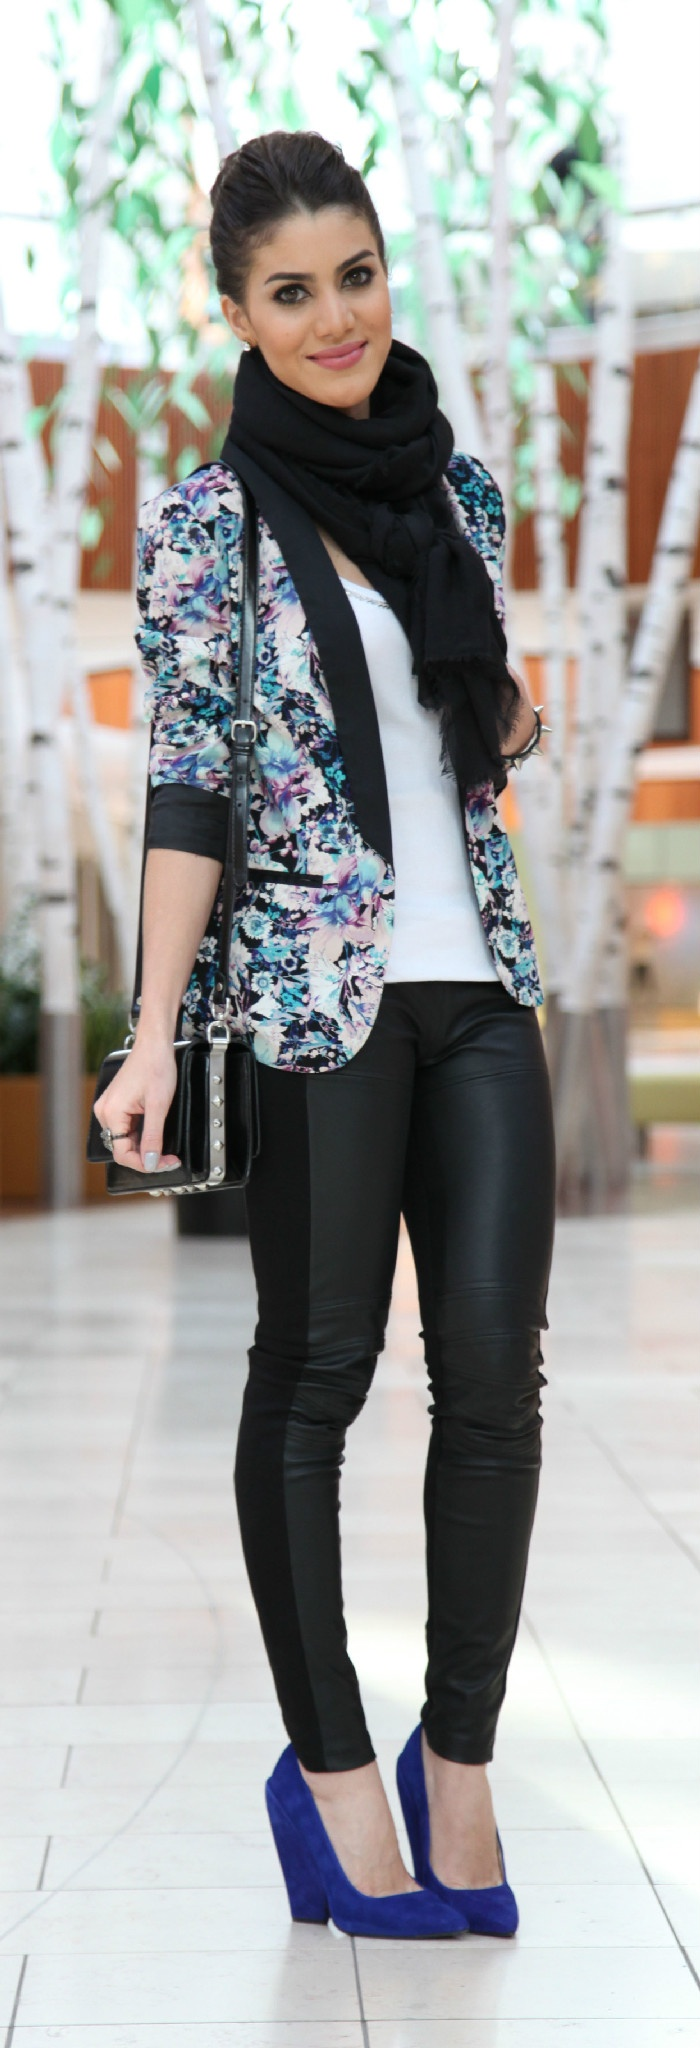 I must try this entire look.  Floral Blazer is fab!  Can't wait to wear it!